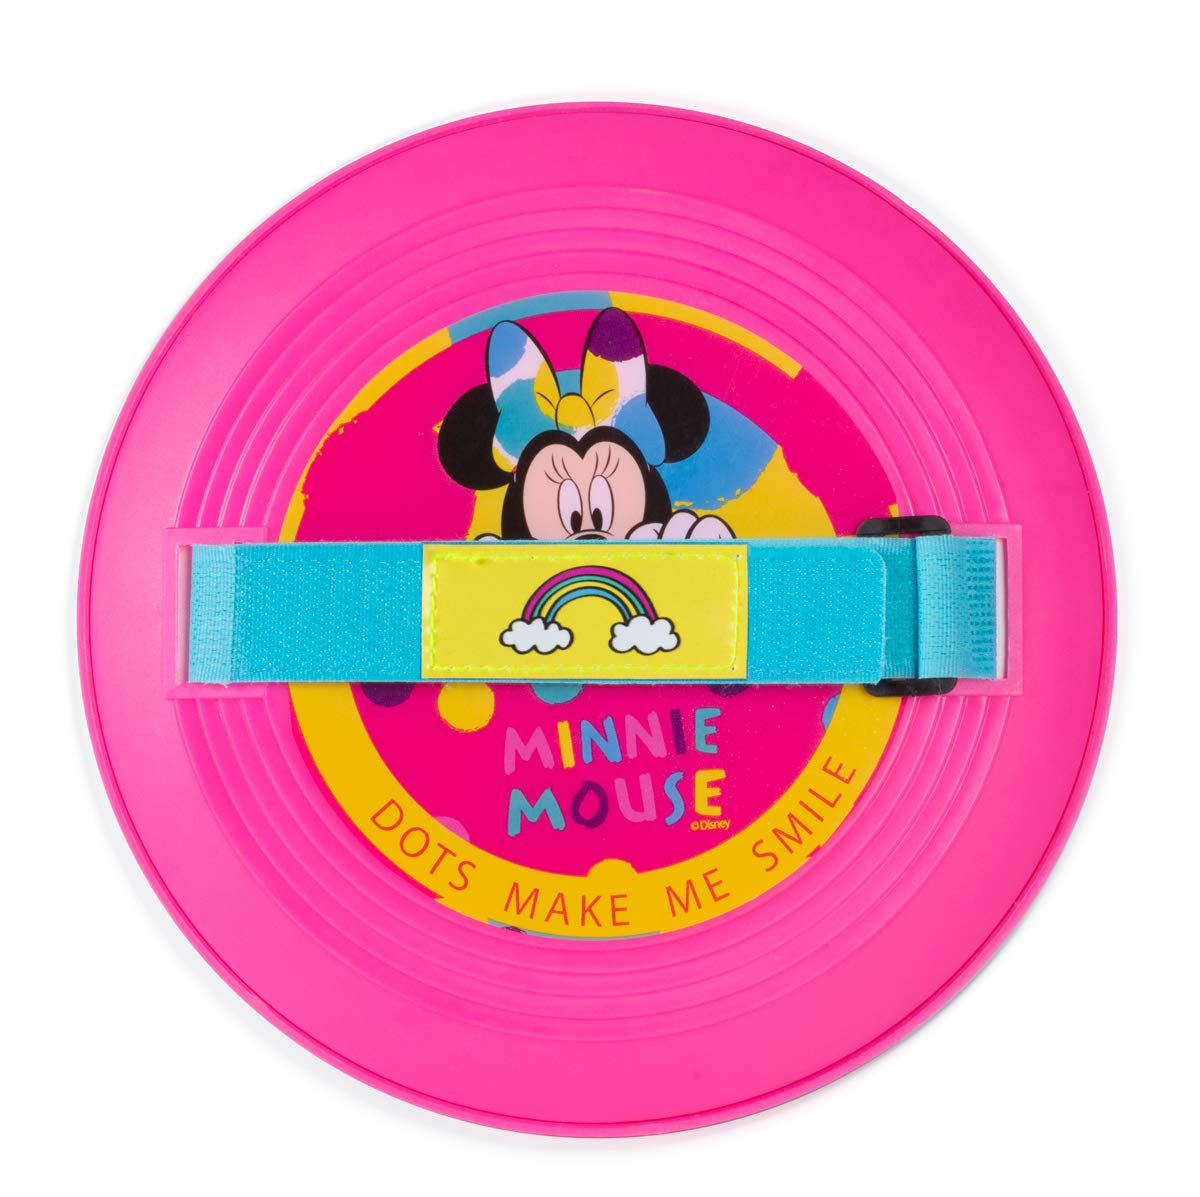 Ball Minnie Disney 9810 Catch rosa 200 g